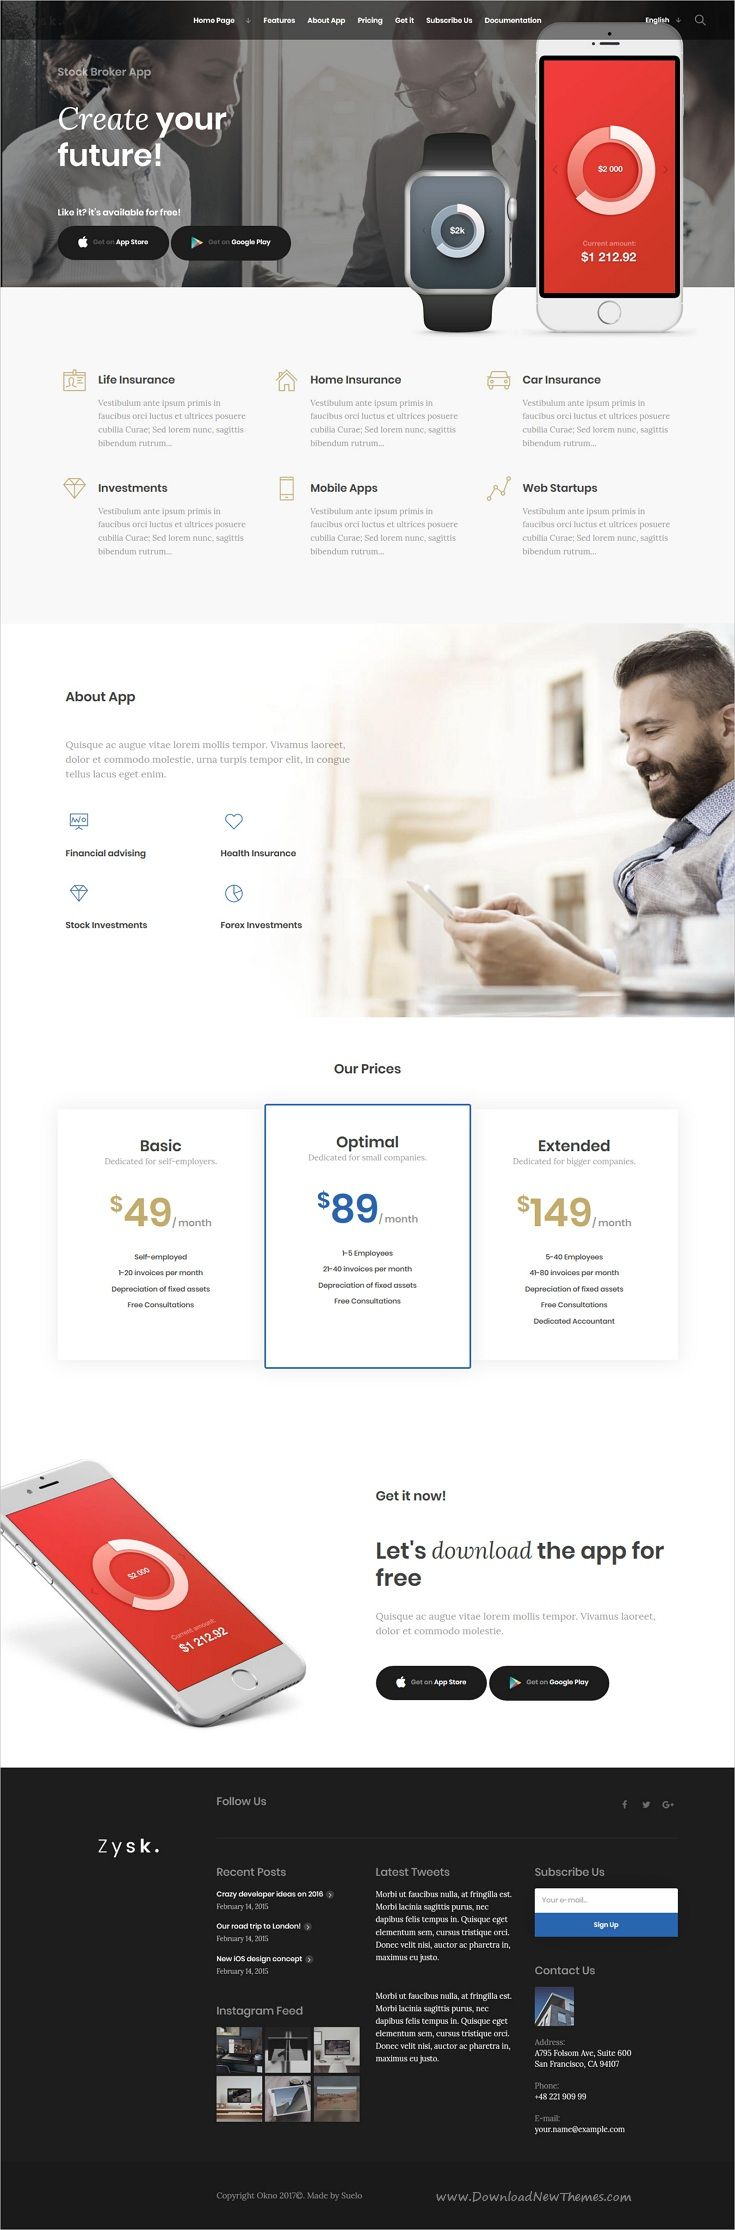 Zysk is smooth and stylish 7in1 responsive #WordPress theme for #sharemarket  #stock #broker #business, finance and consulting services professional website download now..